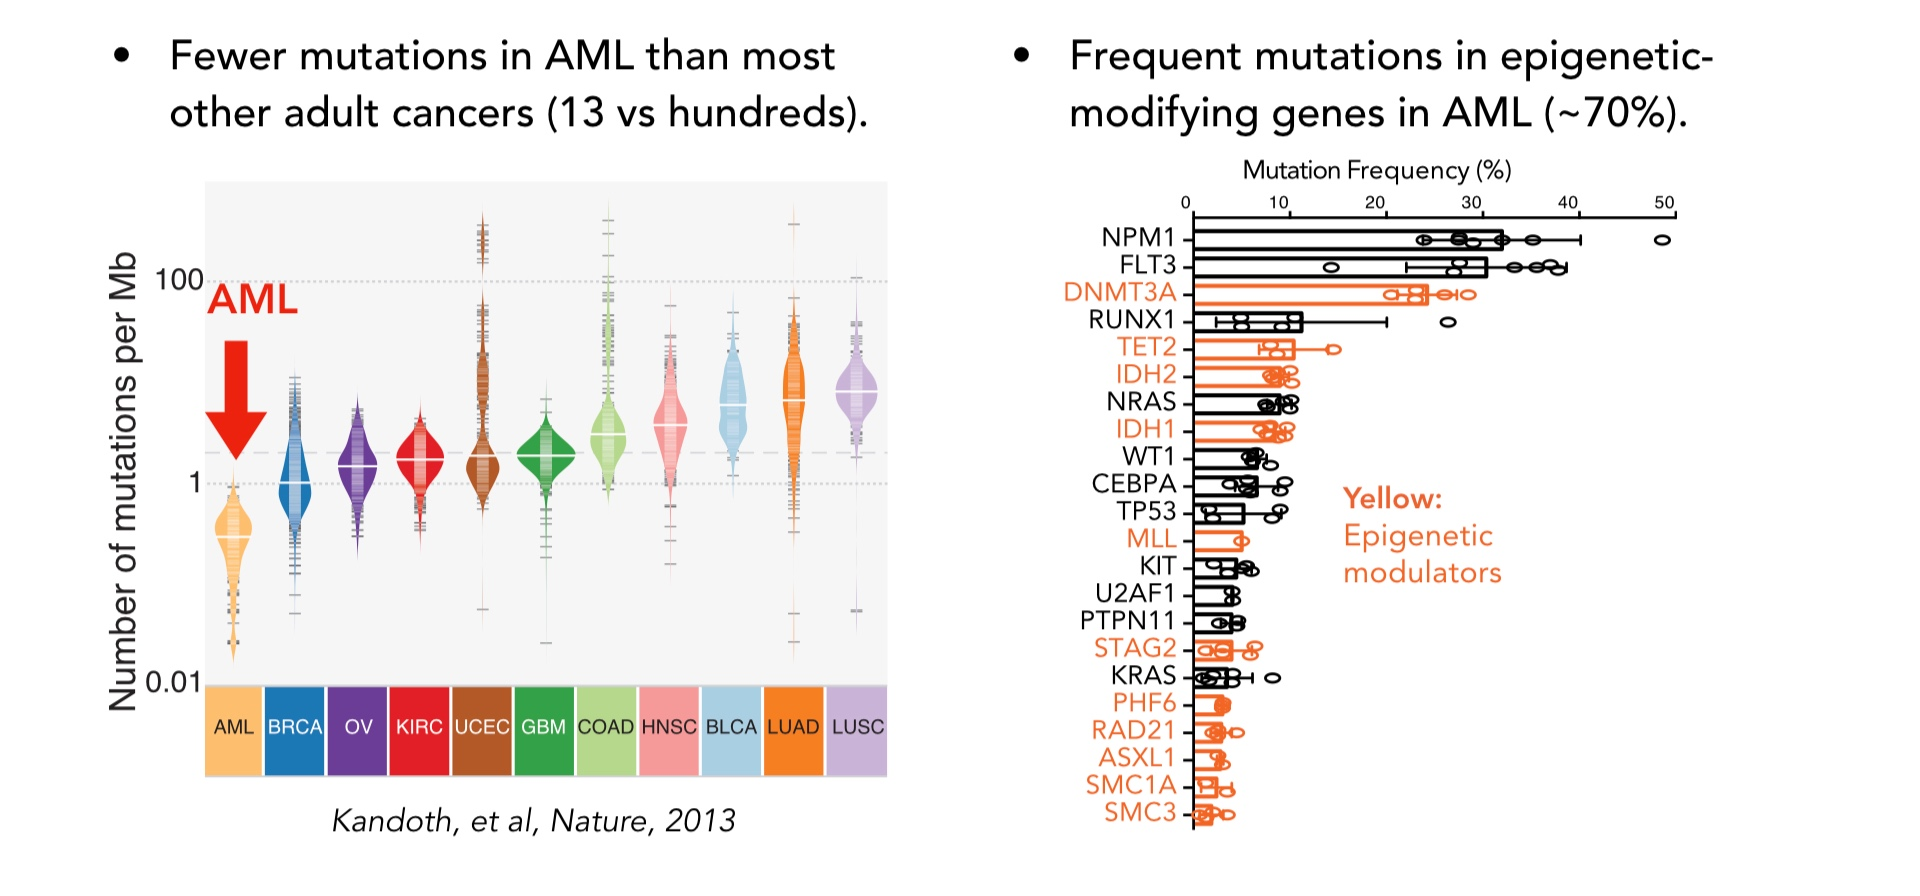 - We use AML as a model to study cancer epigenetics because of its unique characteristics.